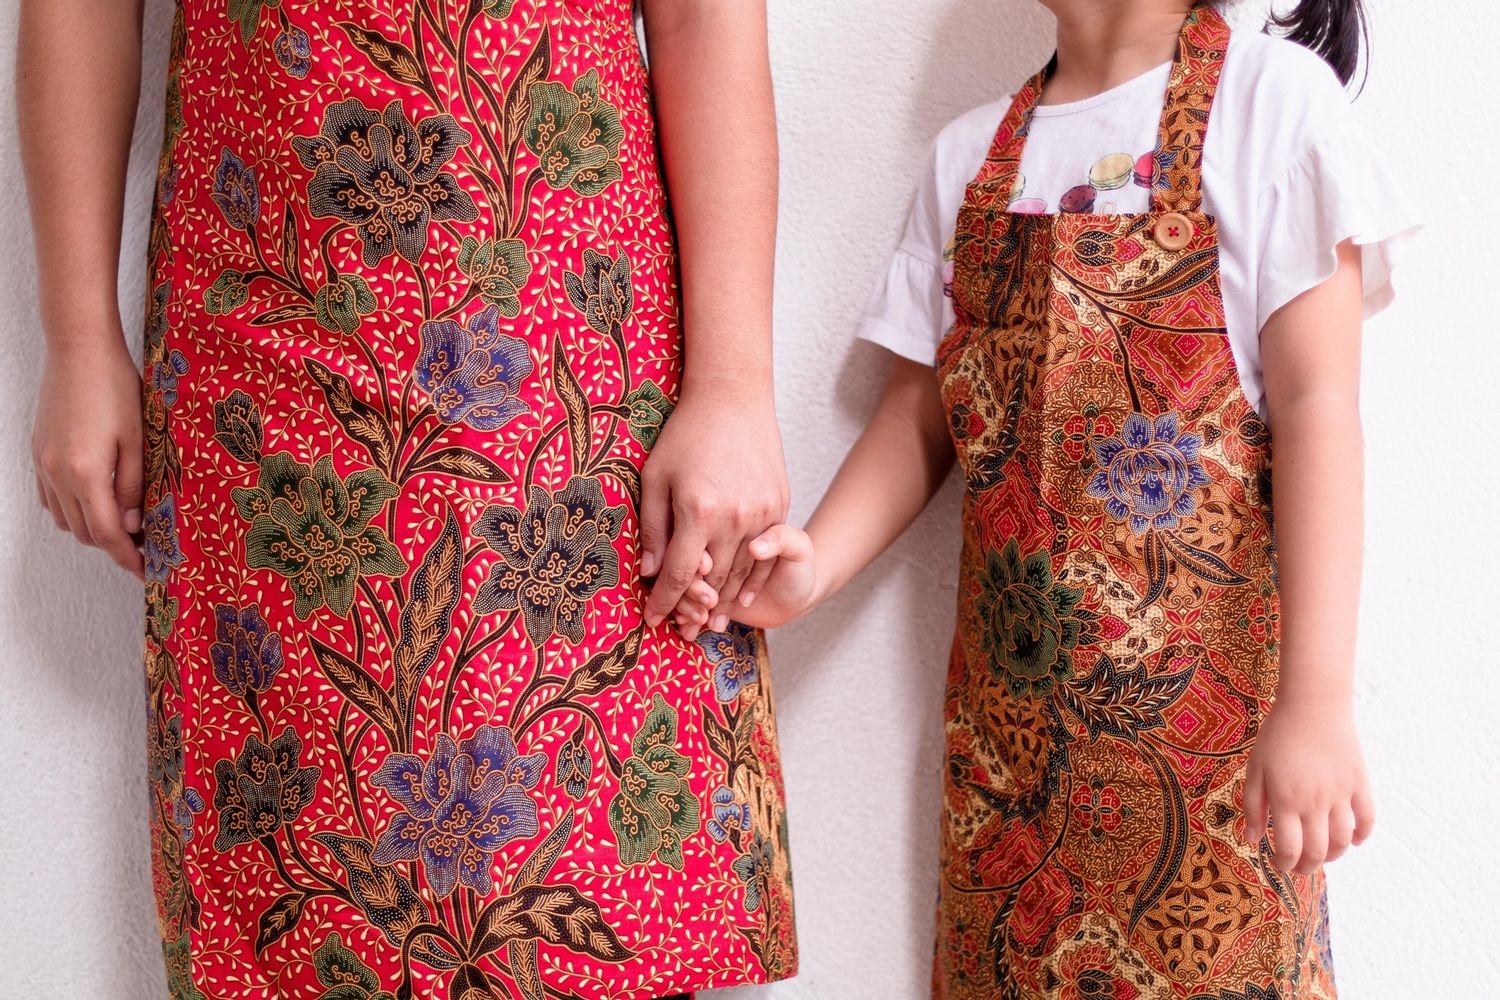 Dignity's Online Shop | Matching aprons for you and your little one!